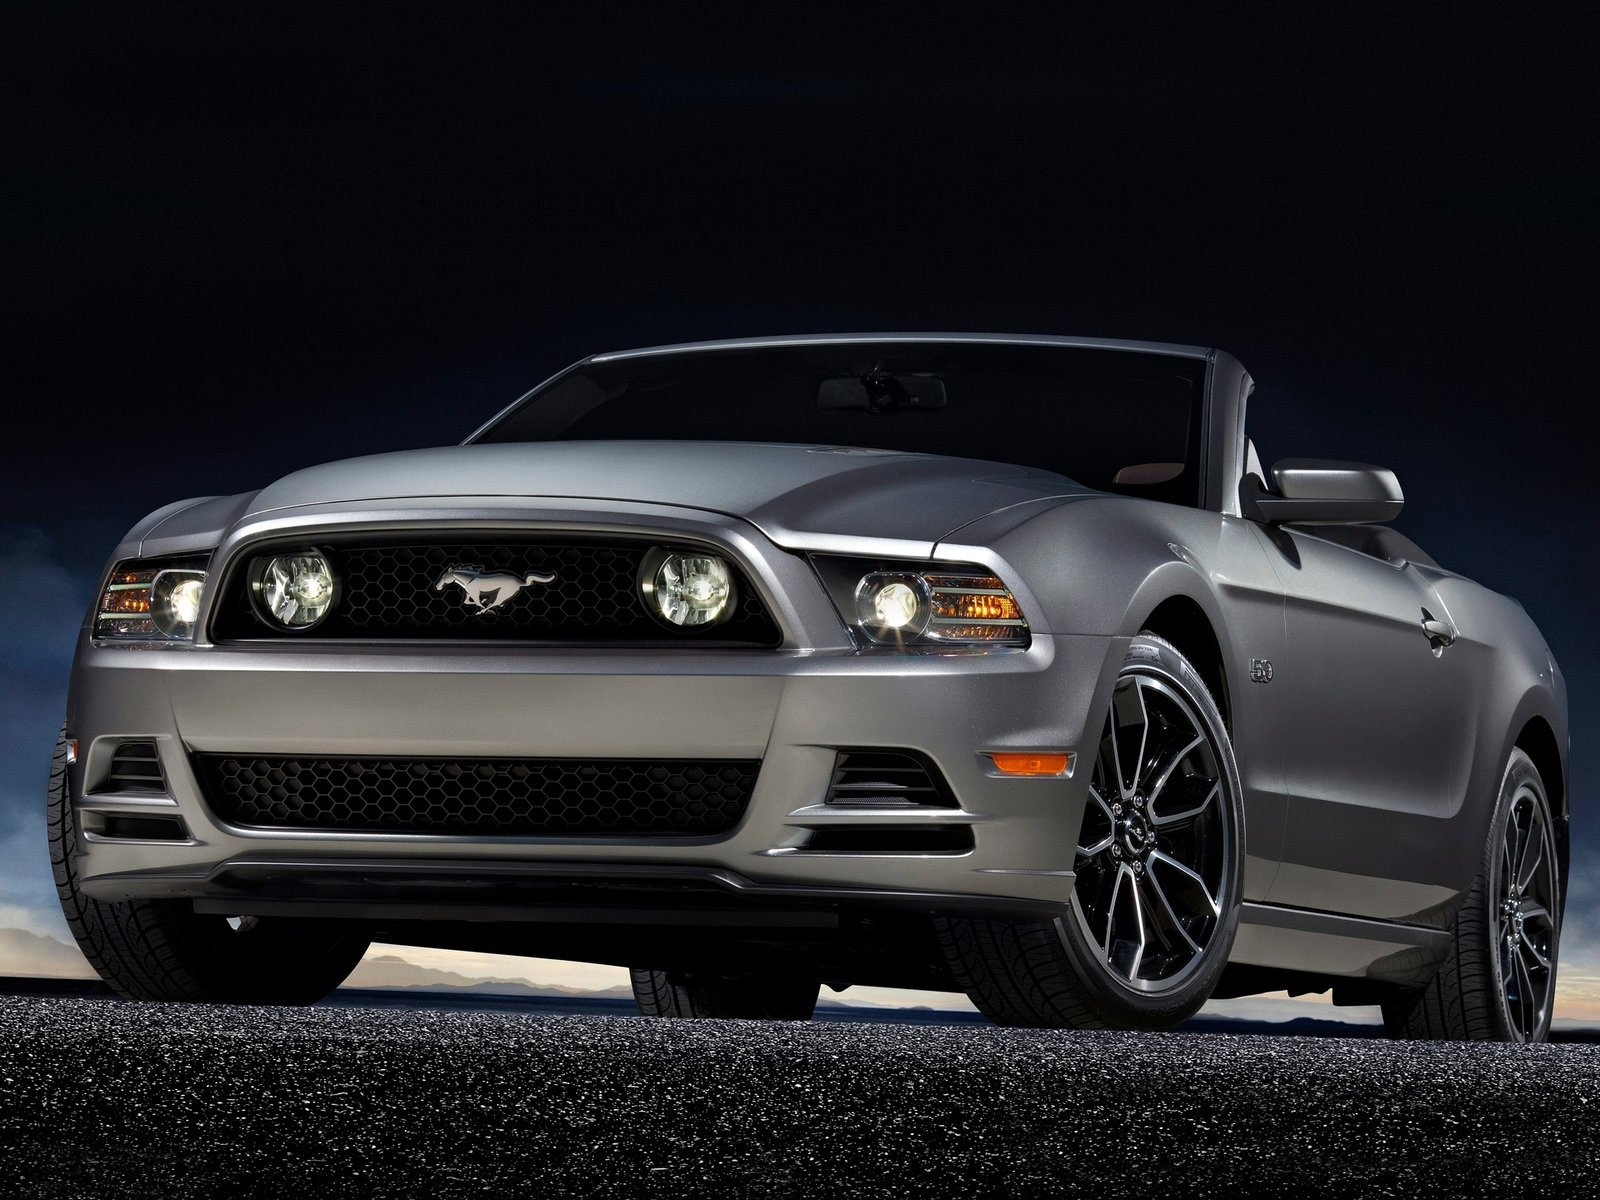 Latest Gambar Mobil Ford Mustang Gt 2013 Free Download